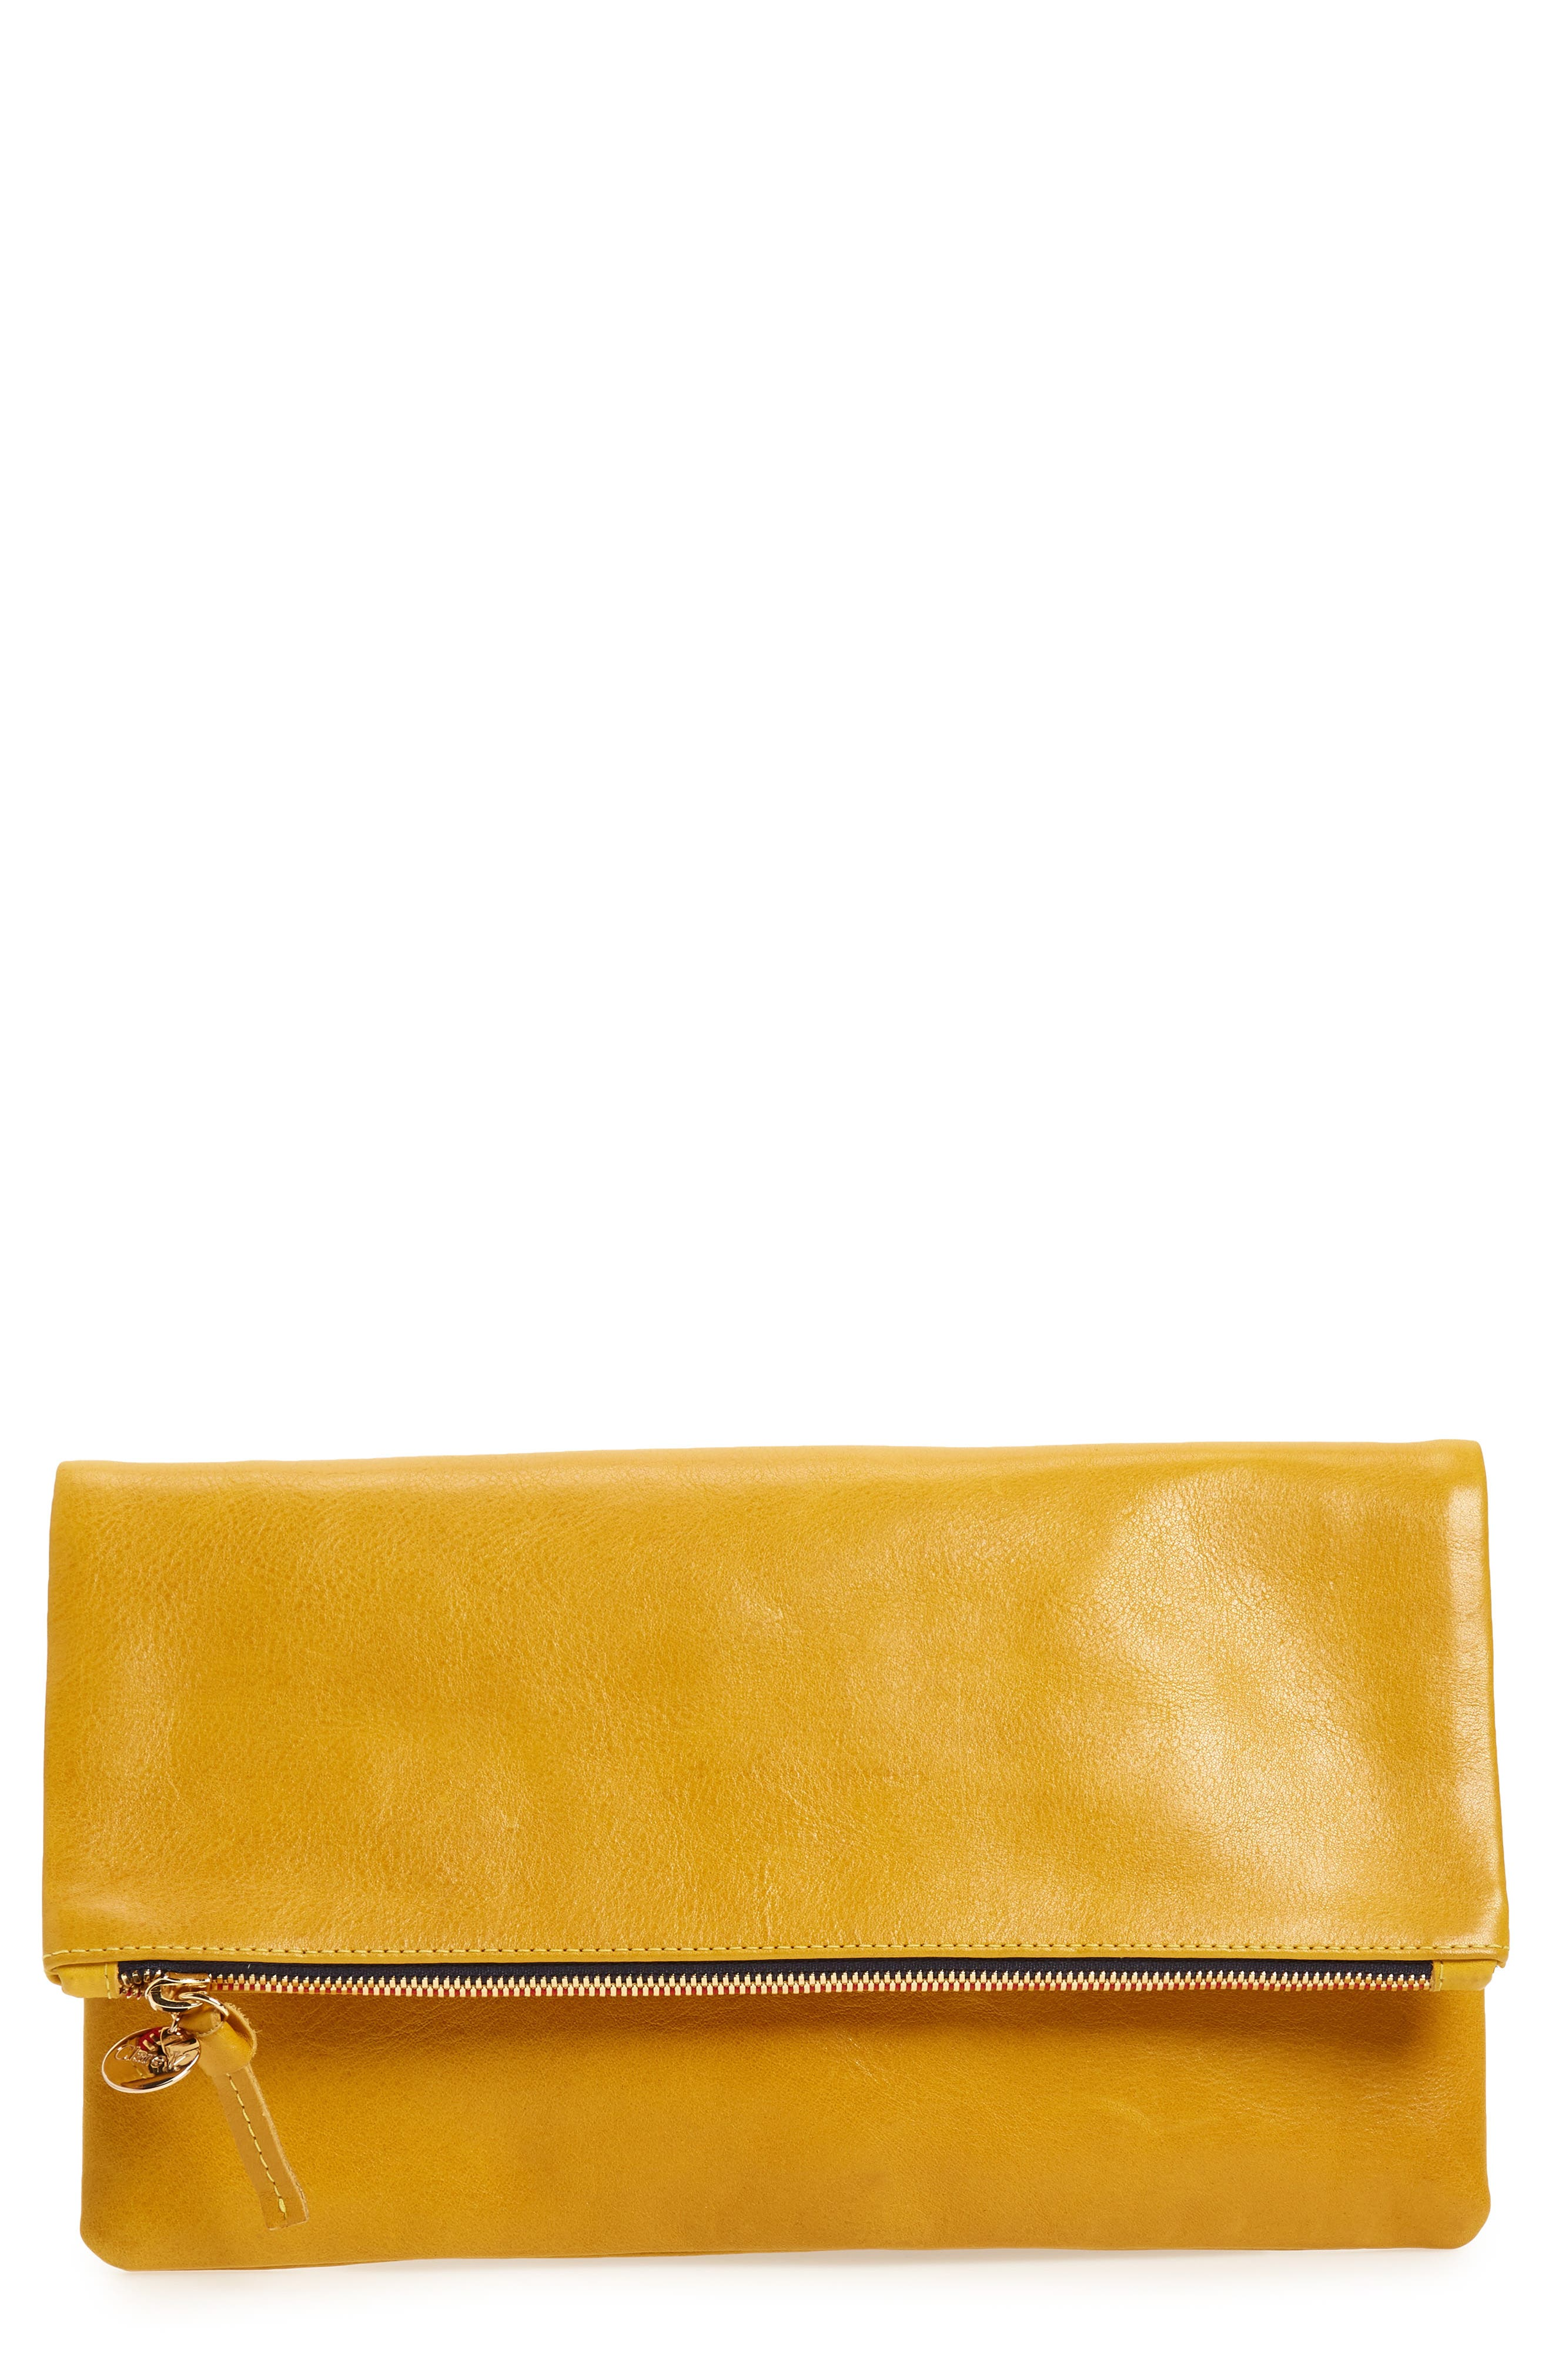 Leather Foldover Clutch,                             Main thumbnail 1, color,                             700